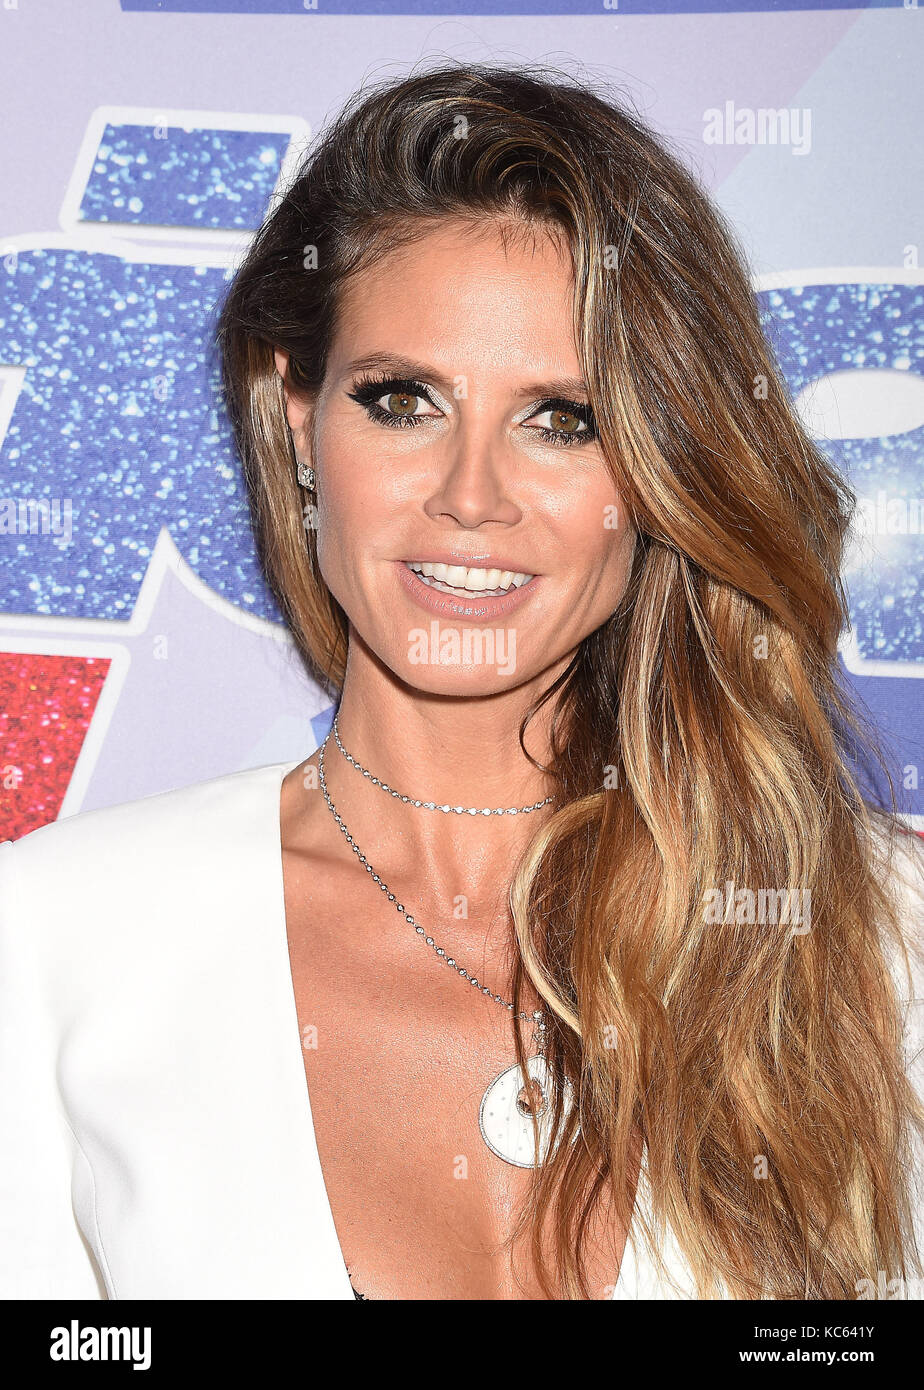 heidi klum 2017 stock photos heidi klum 2017 stock images alamy. Black Bedroom Furniture Sets. Home Design Ideas